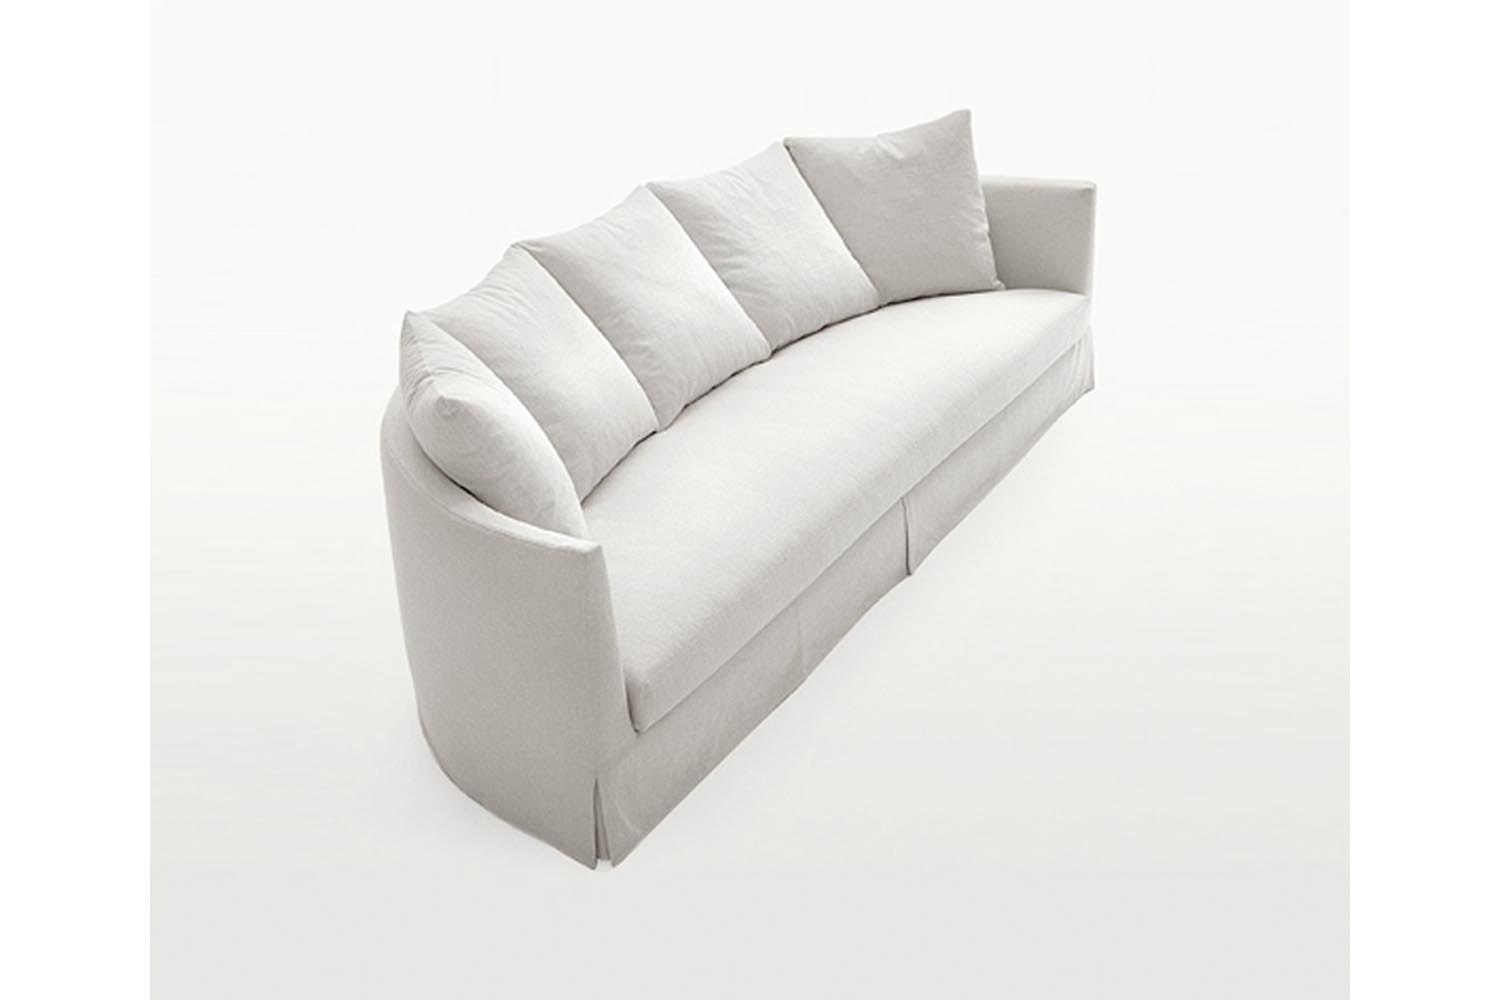 Crono Sofa by Antonio Citterio for Maxalto